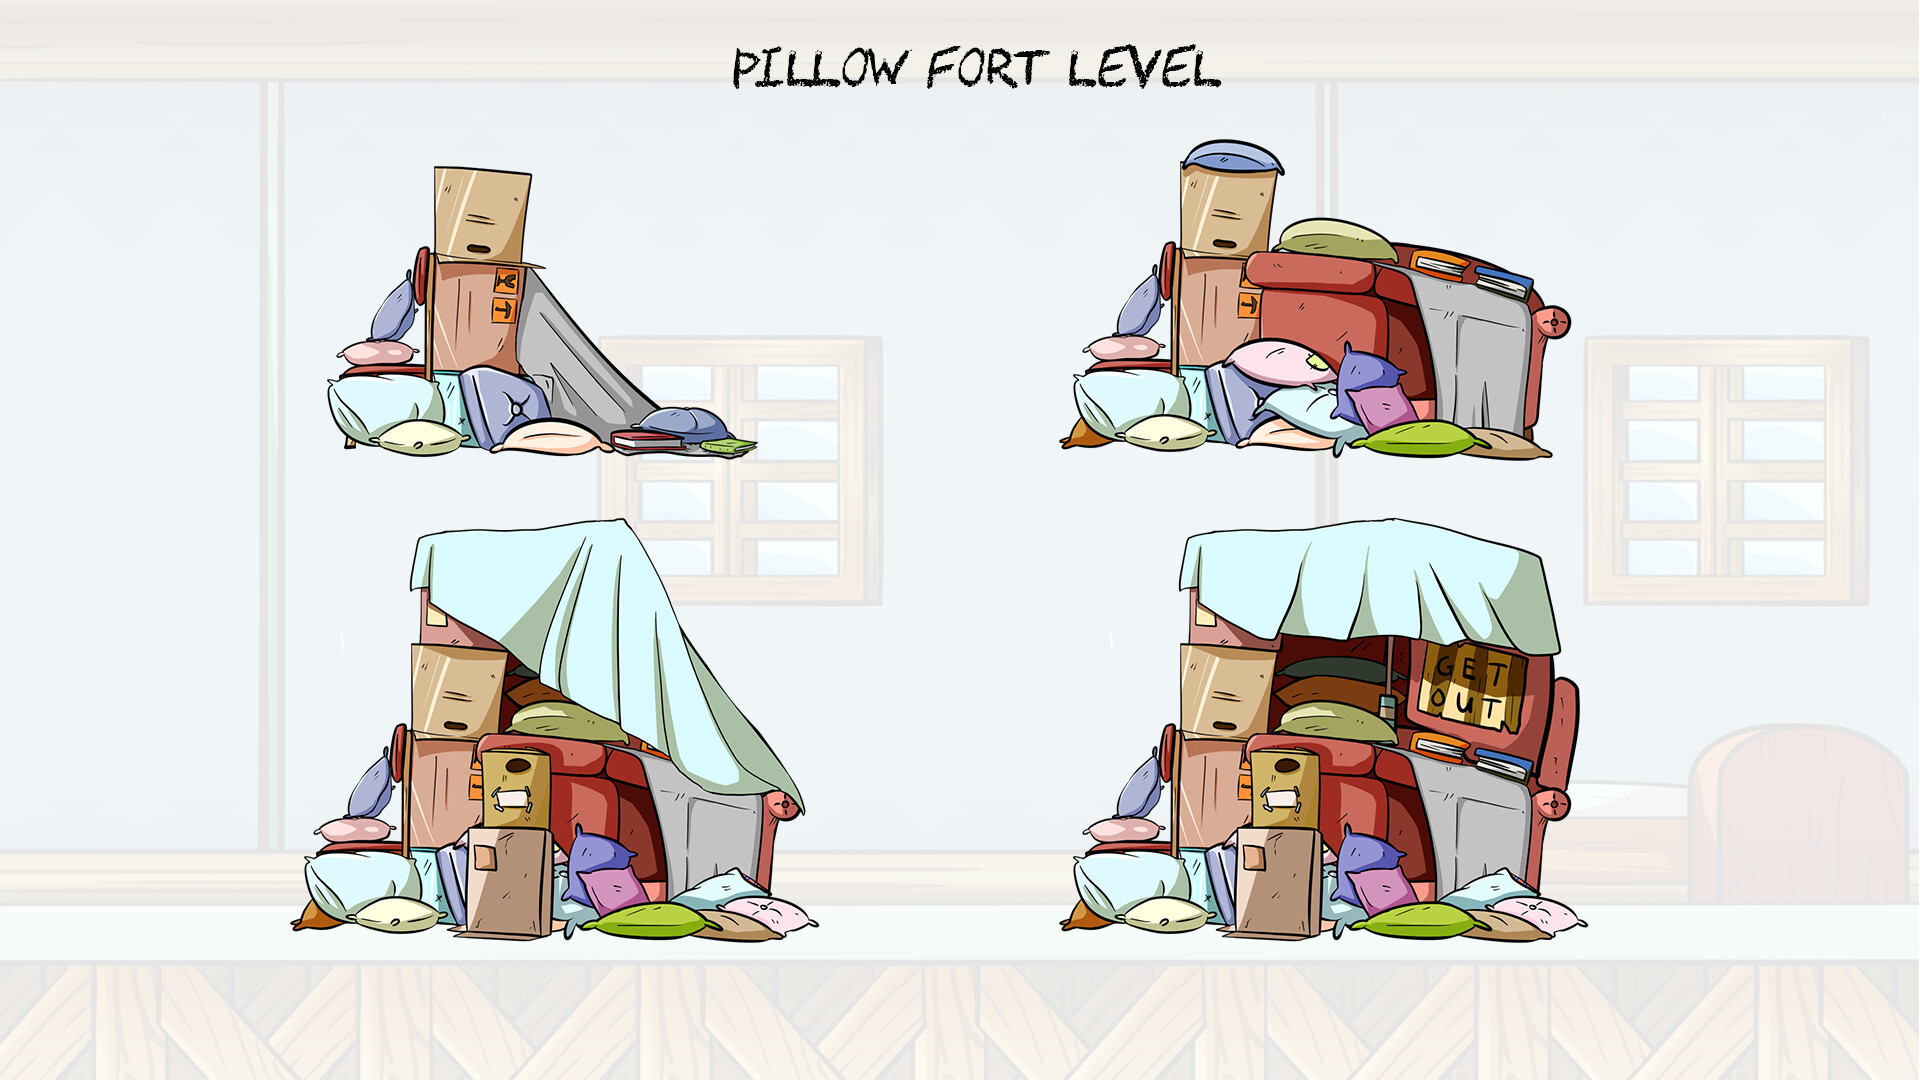 clement lee haoyu pillow fort